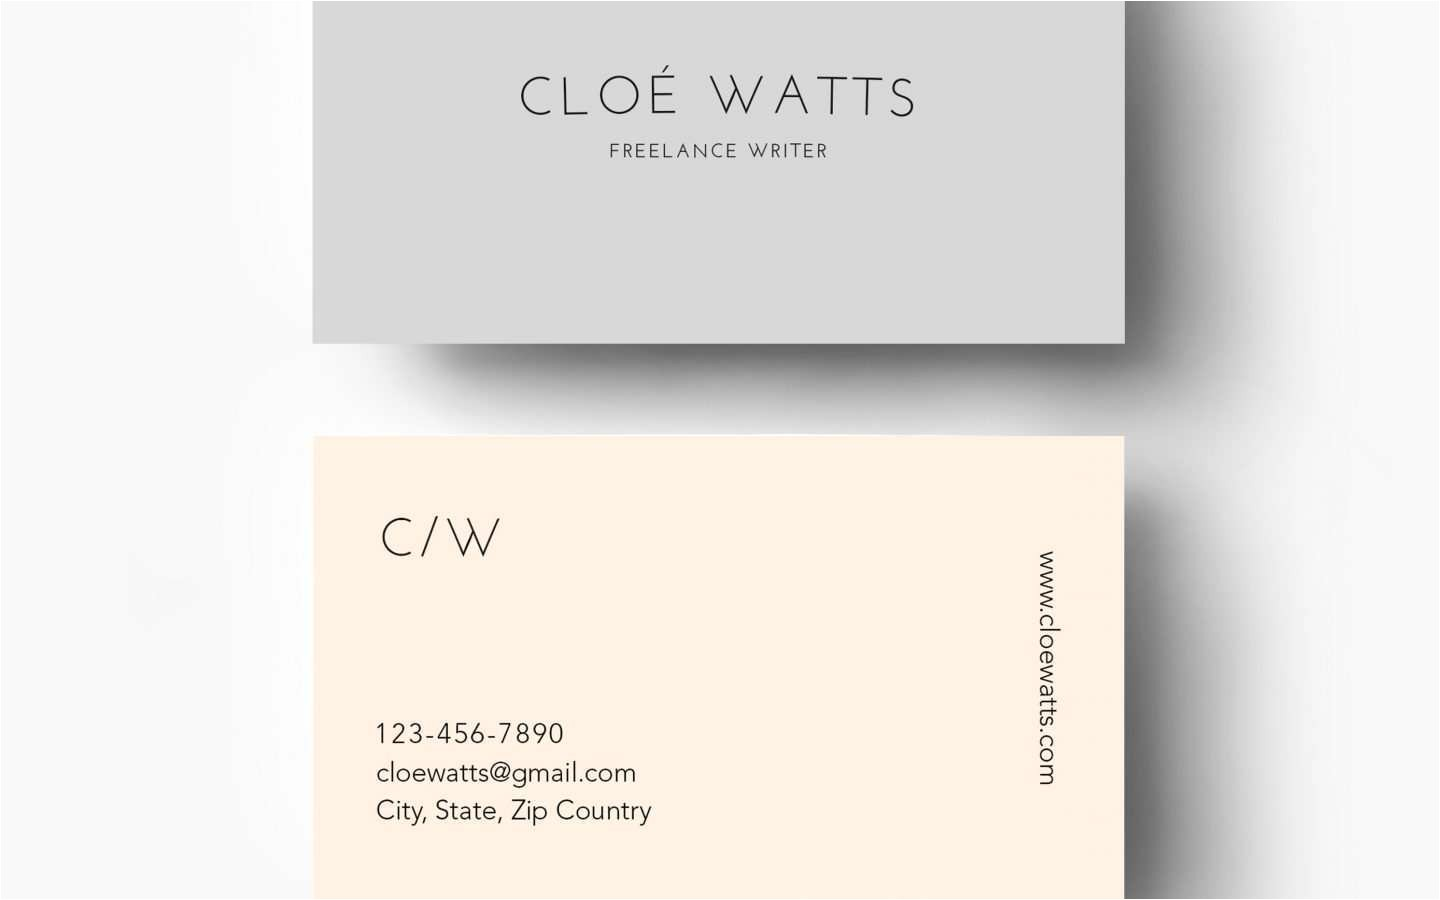 Free Business Cards Templates to Print at Home New 10 Printable Free Printable Business Cards From Home